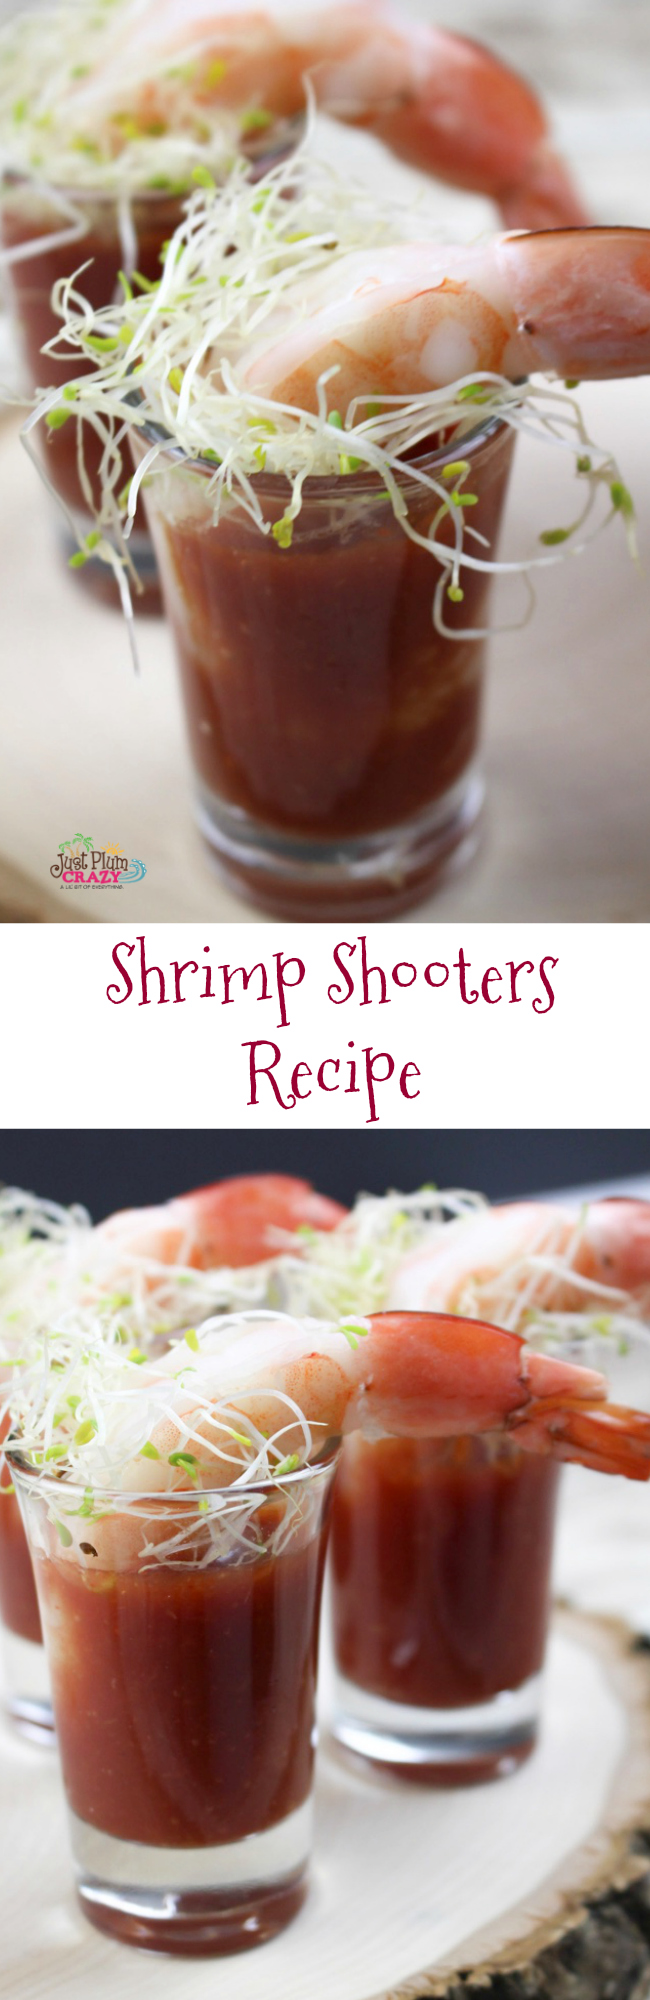 We just got through sharing some fun New Year's Eve crafts for you and the kids so now we have an easy Shrimp Shooters recipe. Because after all, you have eat so you can stay awake and party.